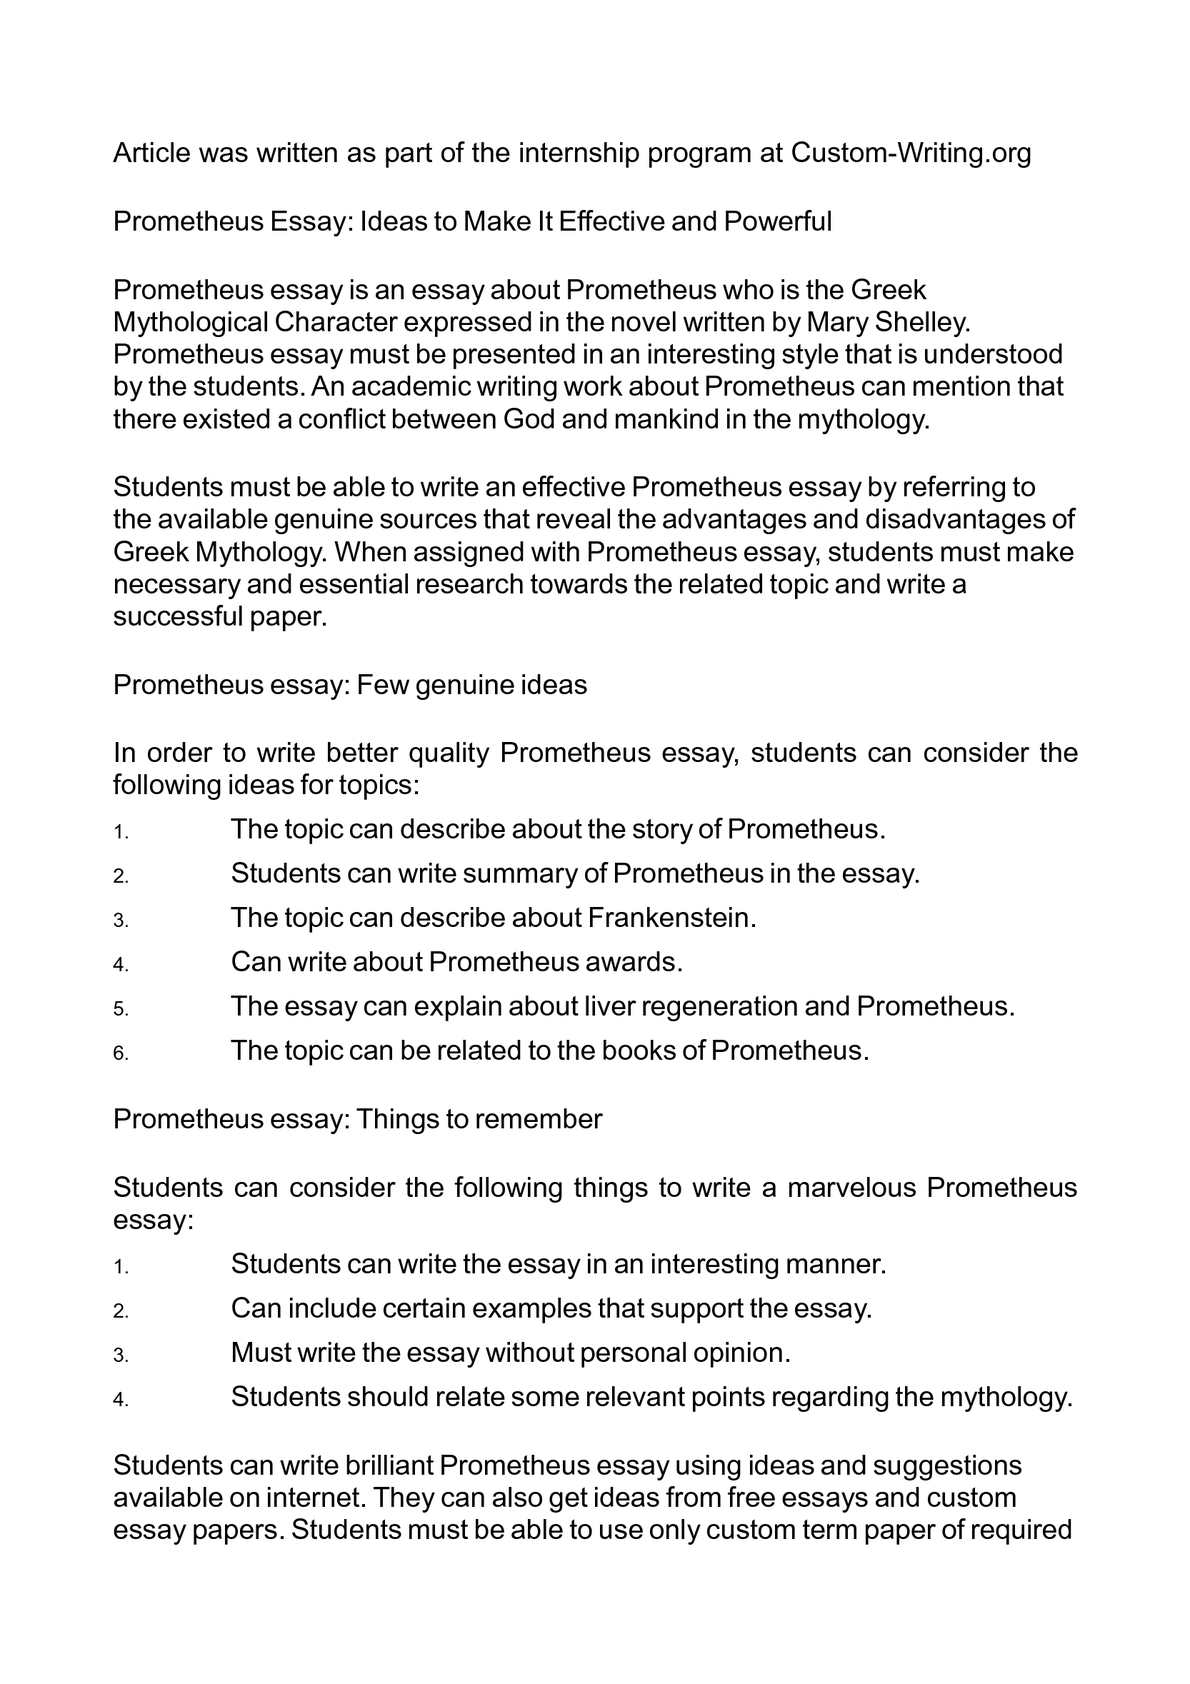 Phd thesis title essay help online from qualified writers